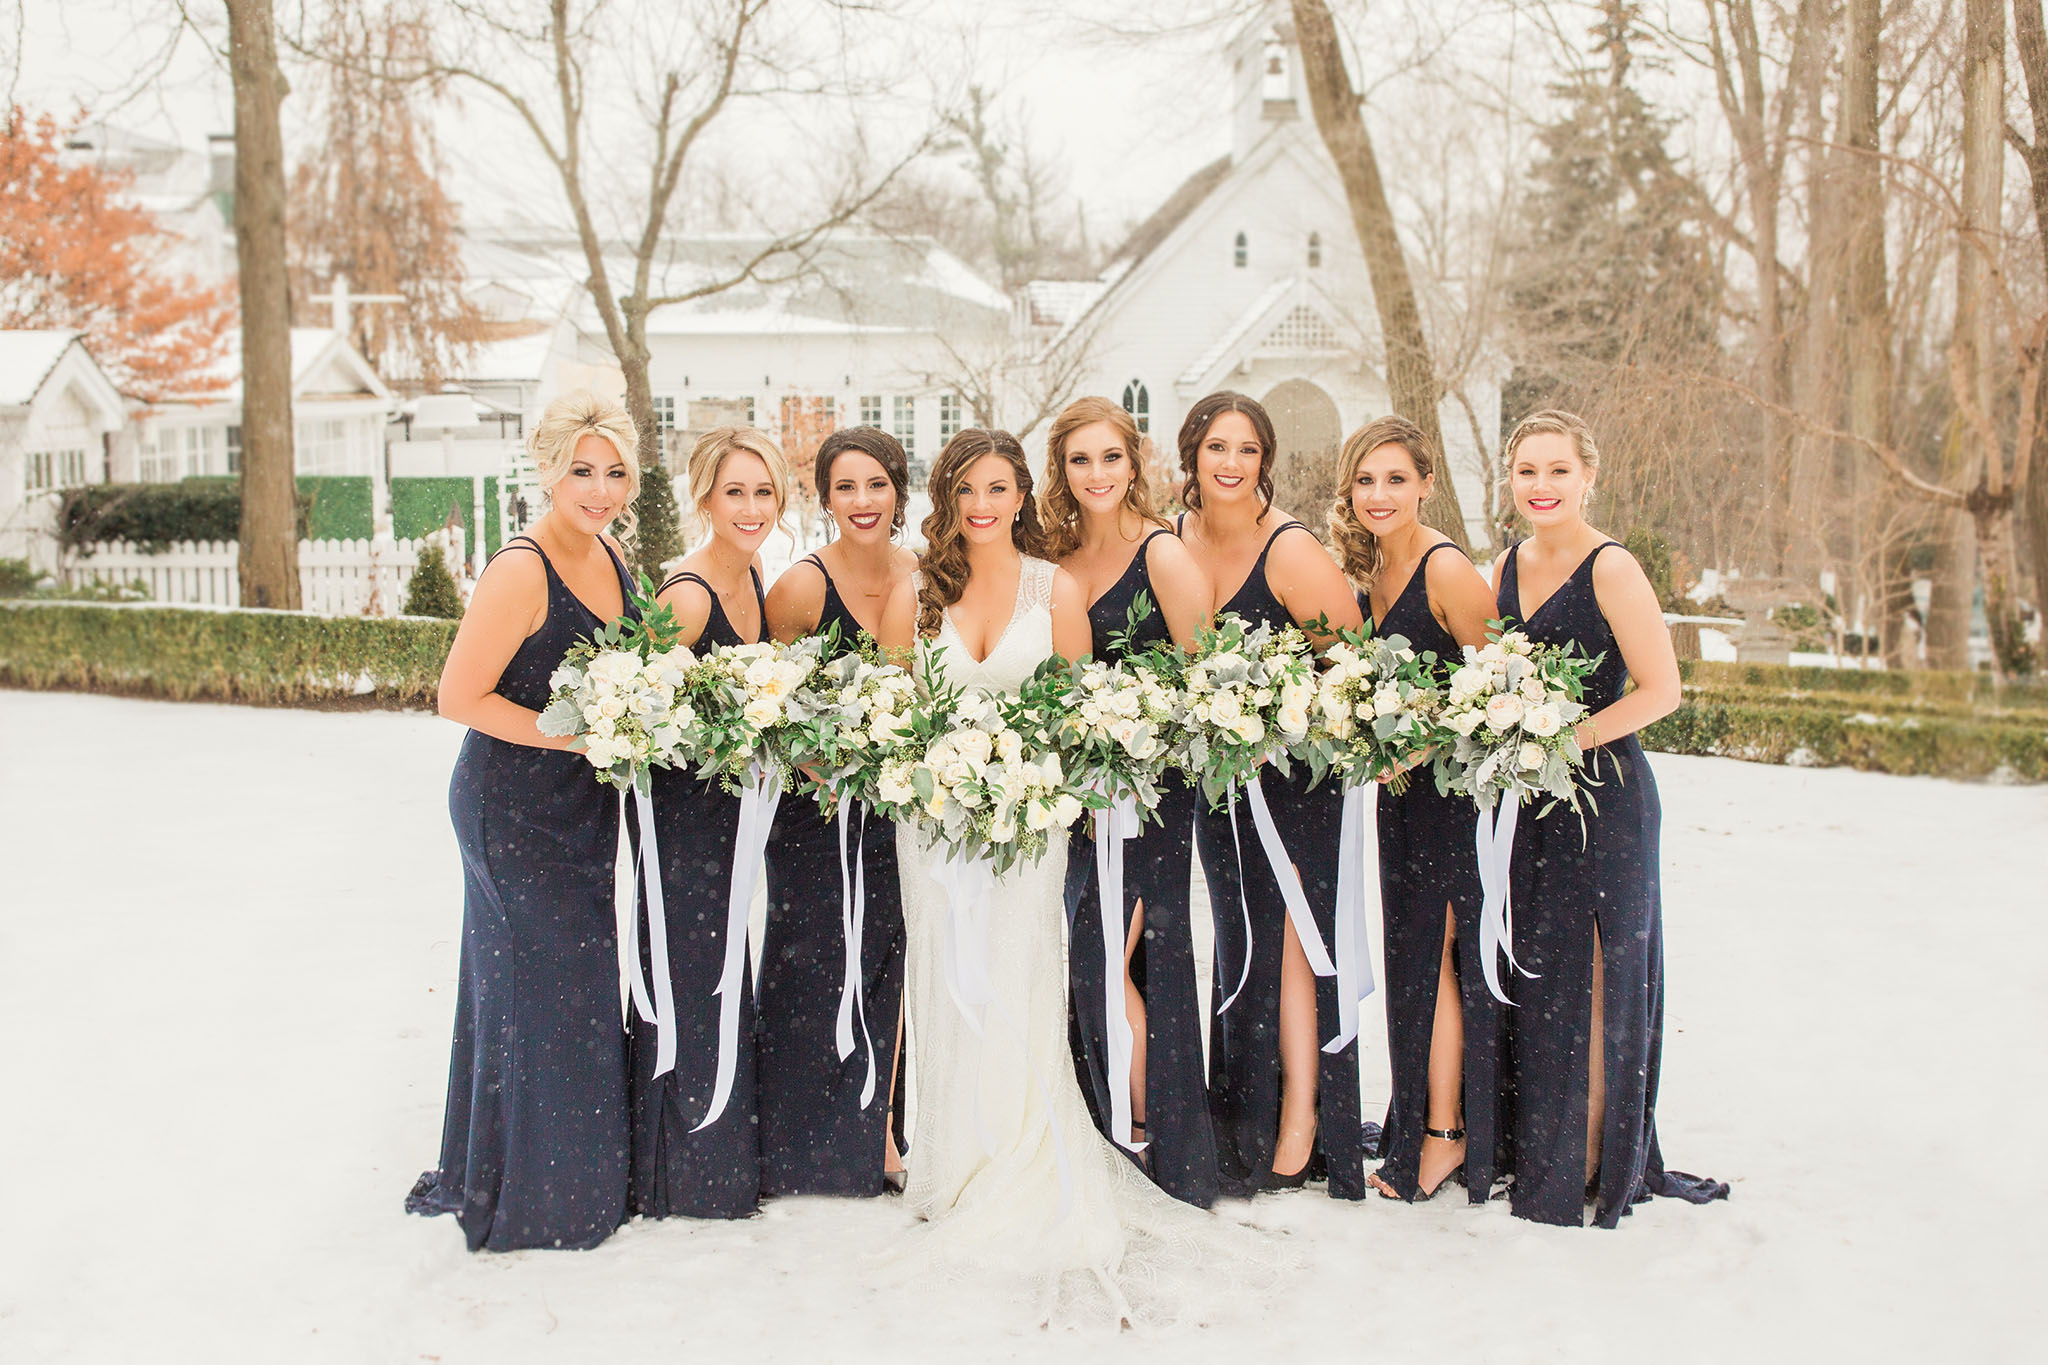 Full bridal party at the Doctors House in Kleinburg. Awesome winter wedding venue.